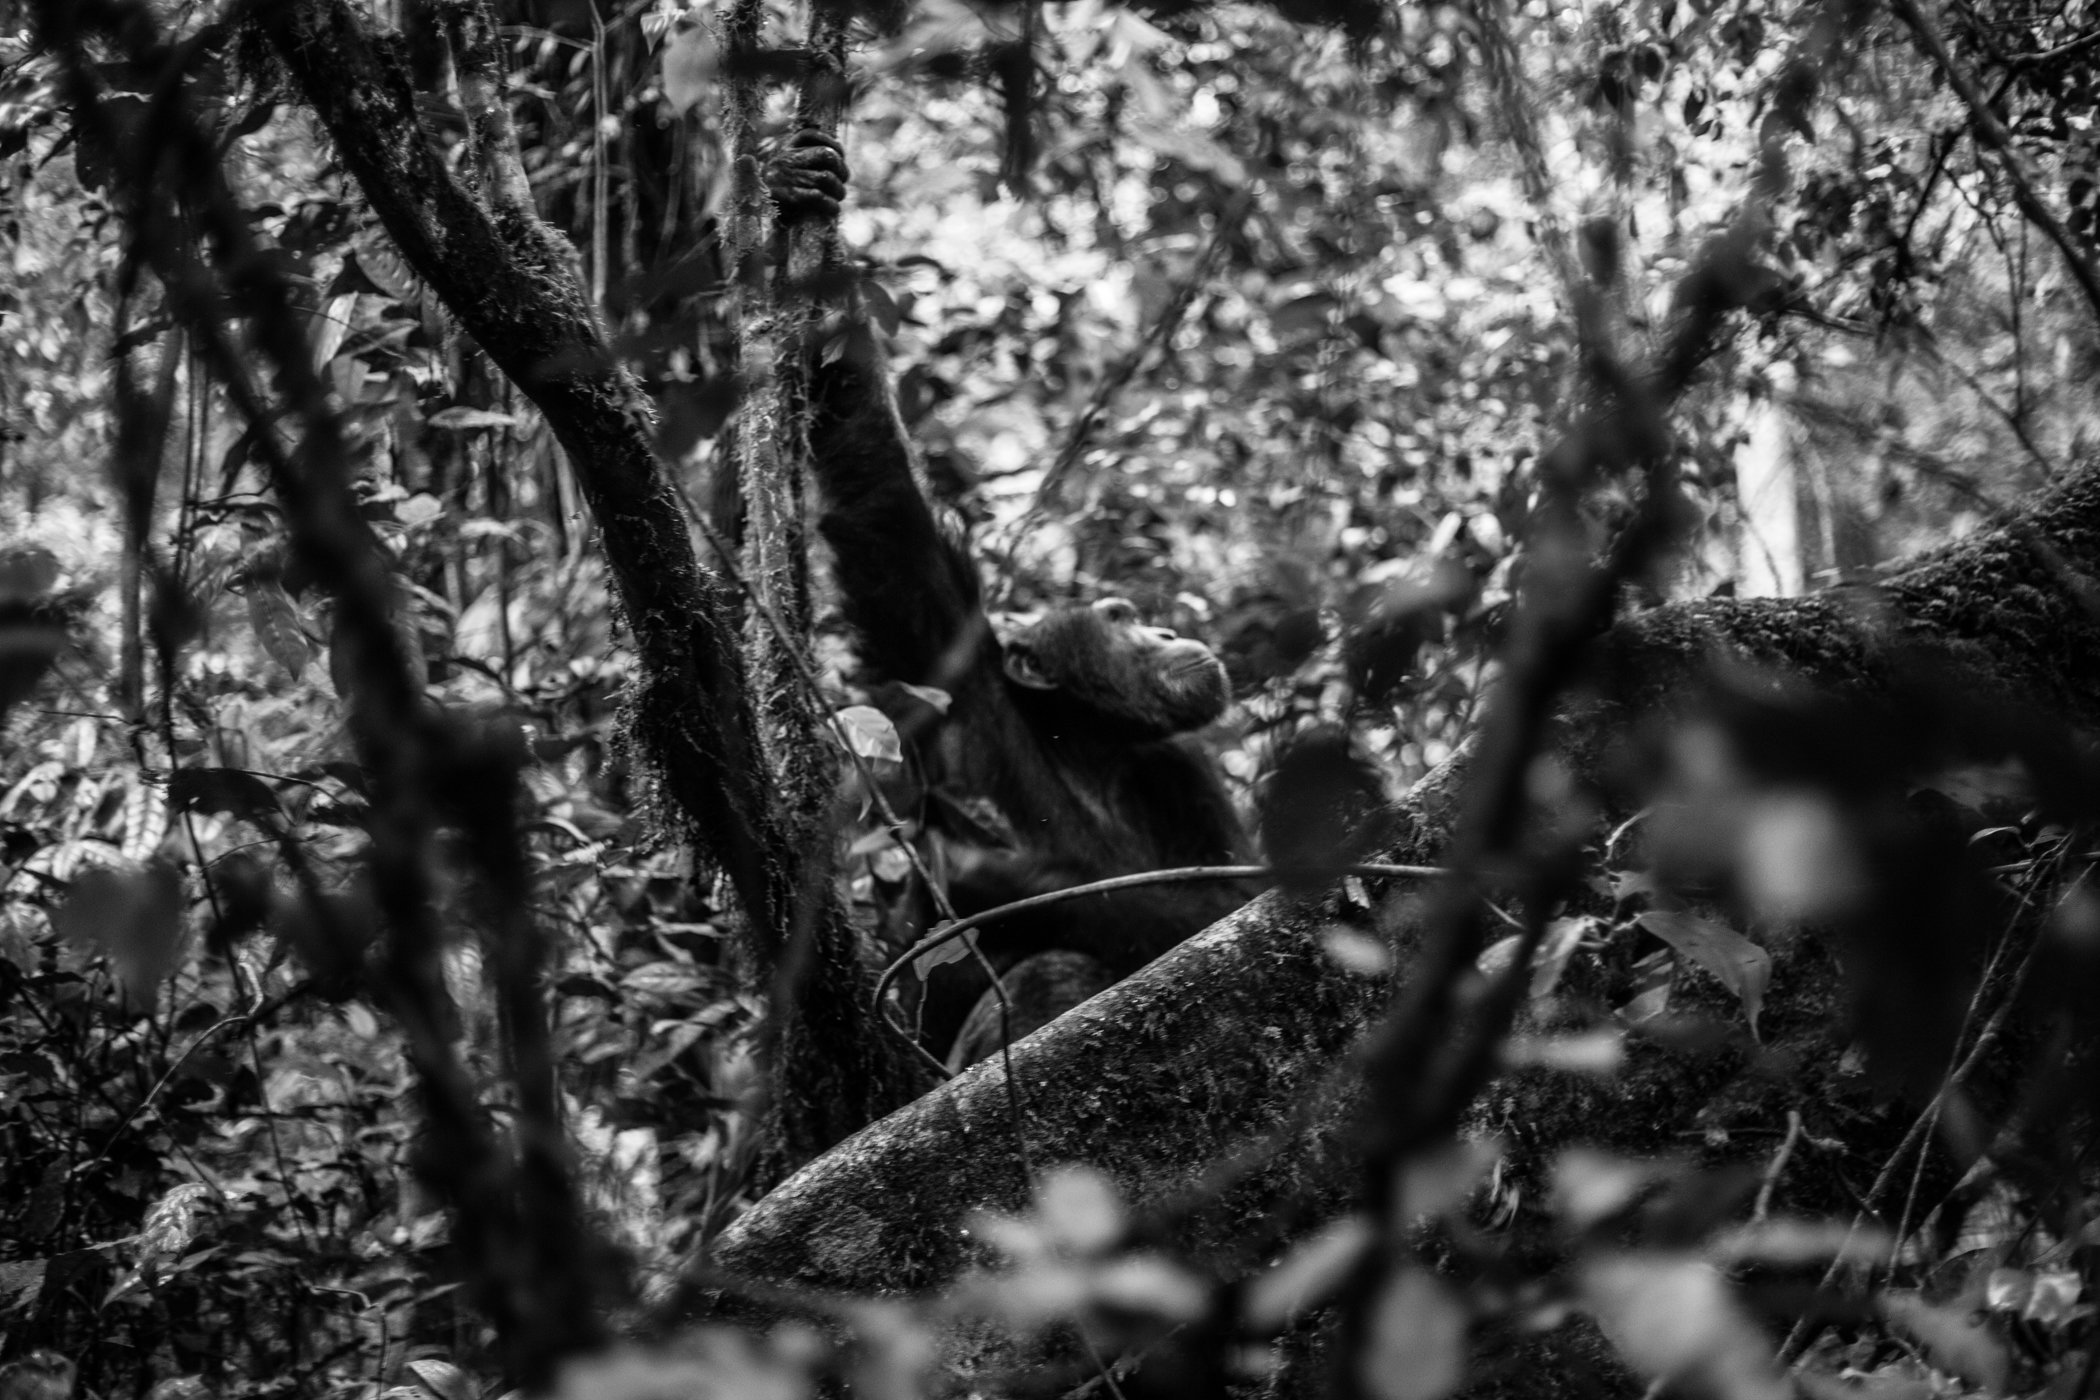 Chimp_Forest_Uganda-IMG_1268-untitled.jpg